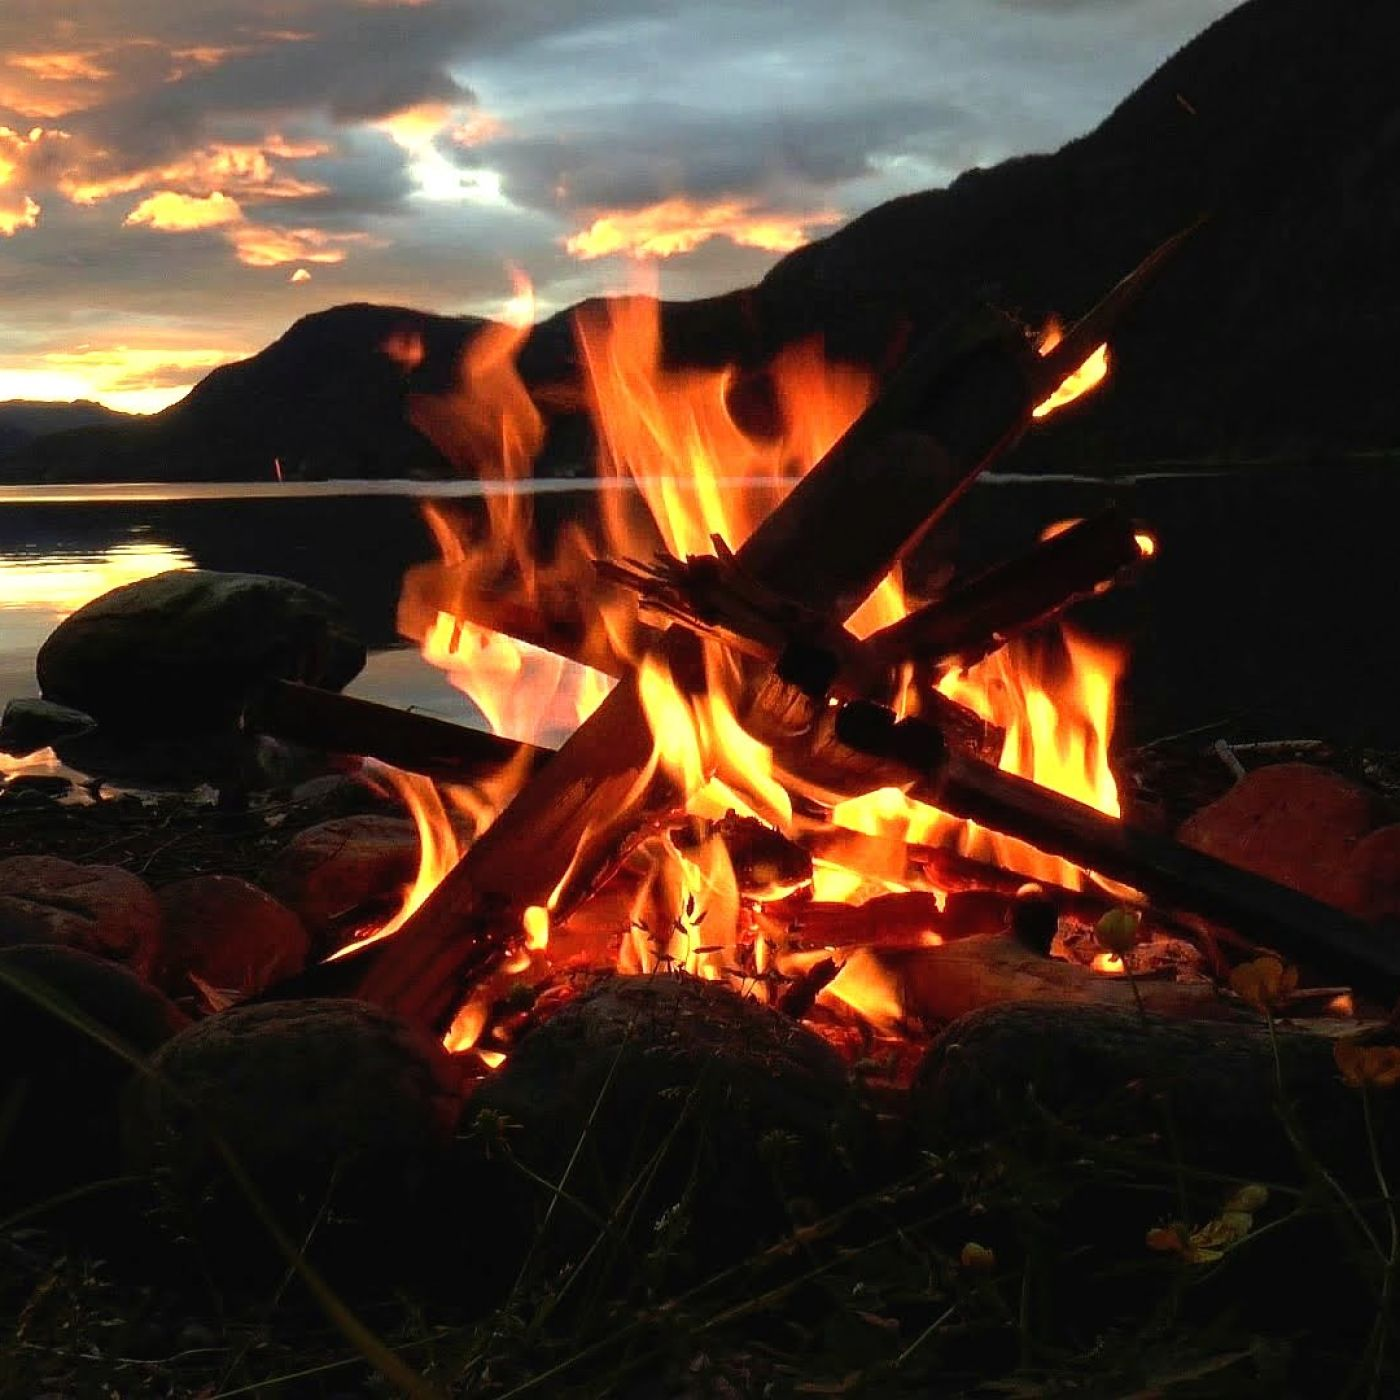 Lakeside Campfire Crackling Fire with Relaxing Nature Night Sounds